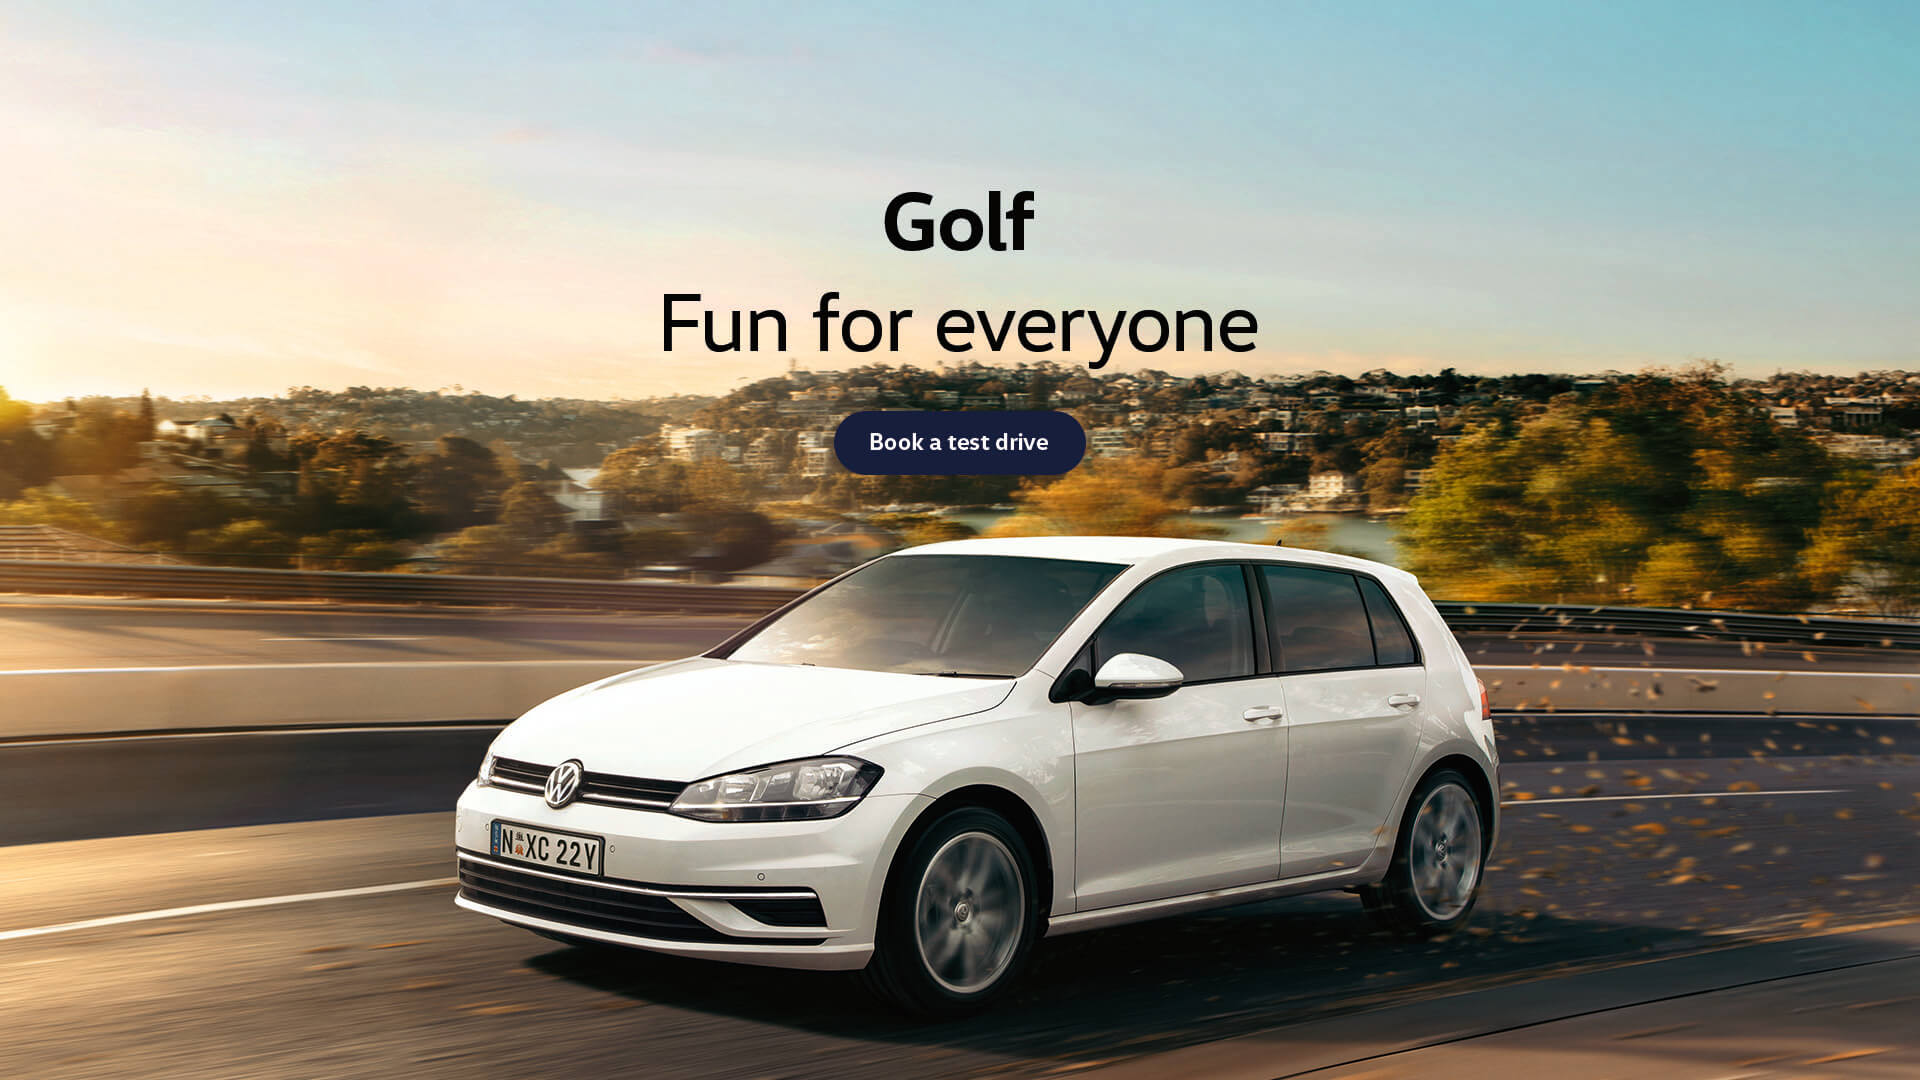 Volkswagen Golf. Fun for everyone. Test drive today at Westpoint Volkswagen, Brisbane